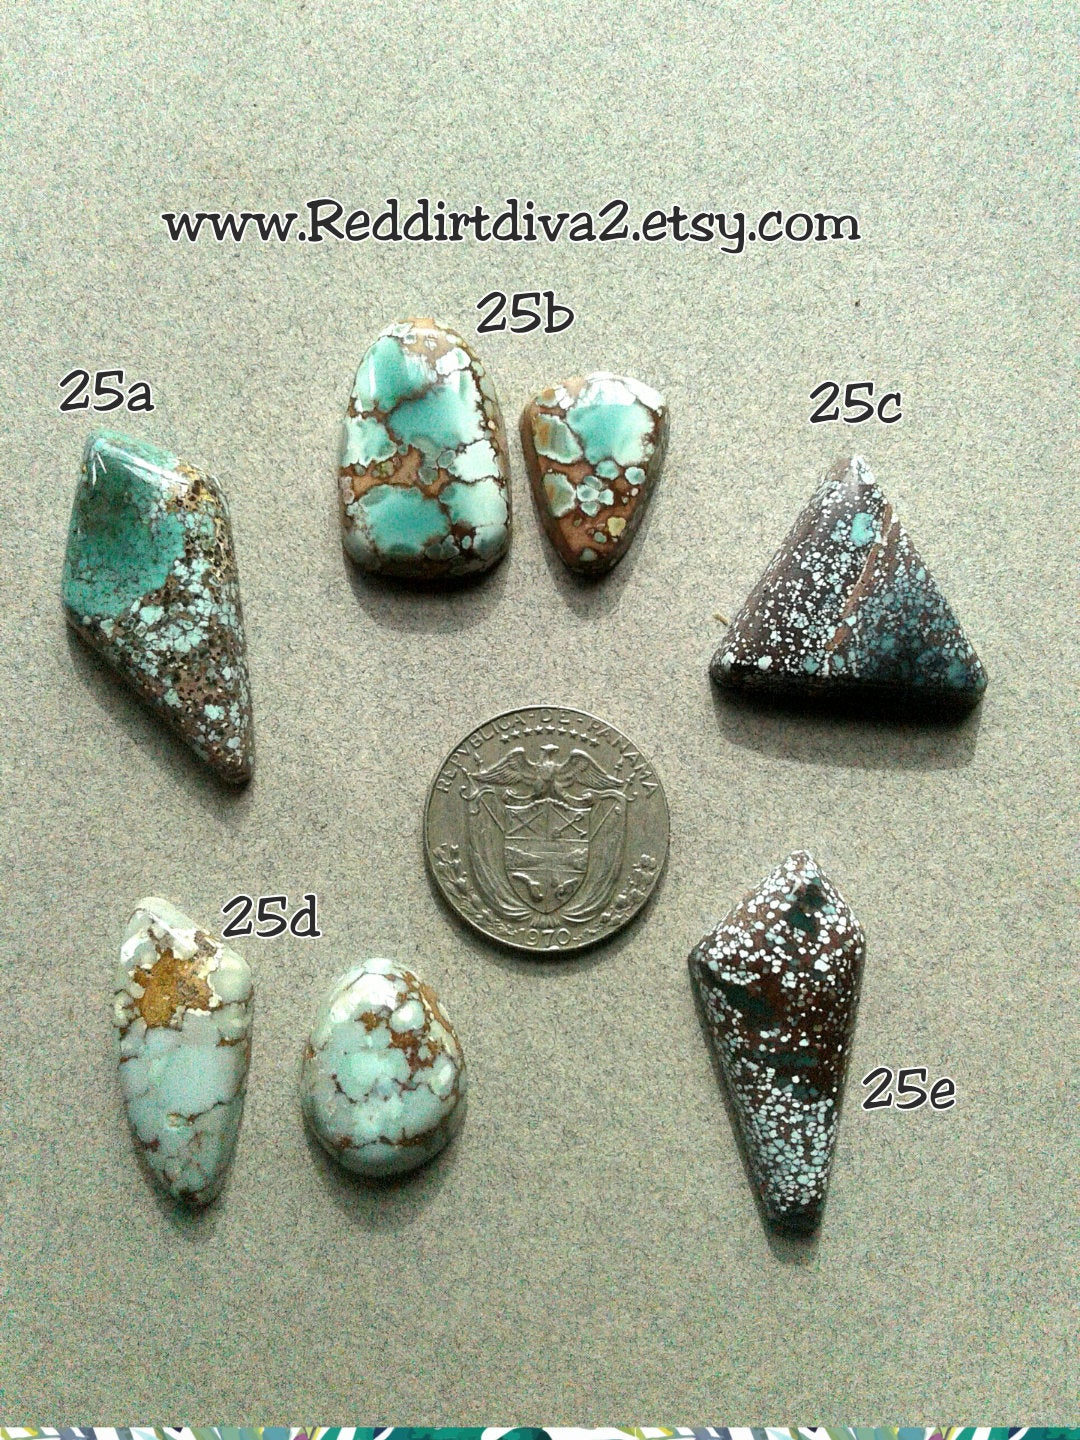 25c, Red River turquoise